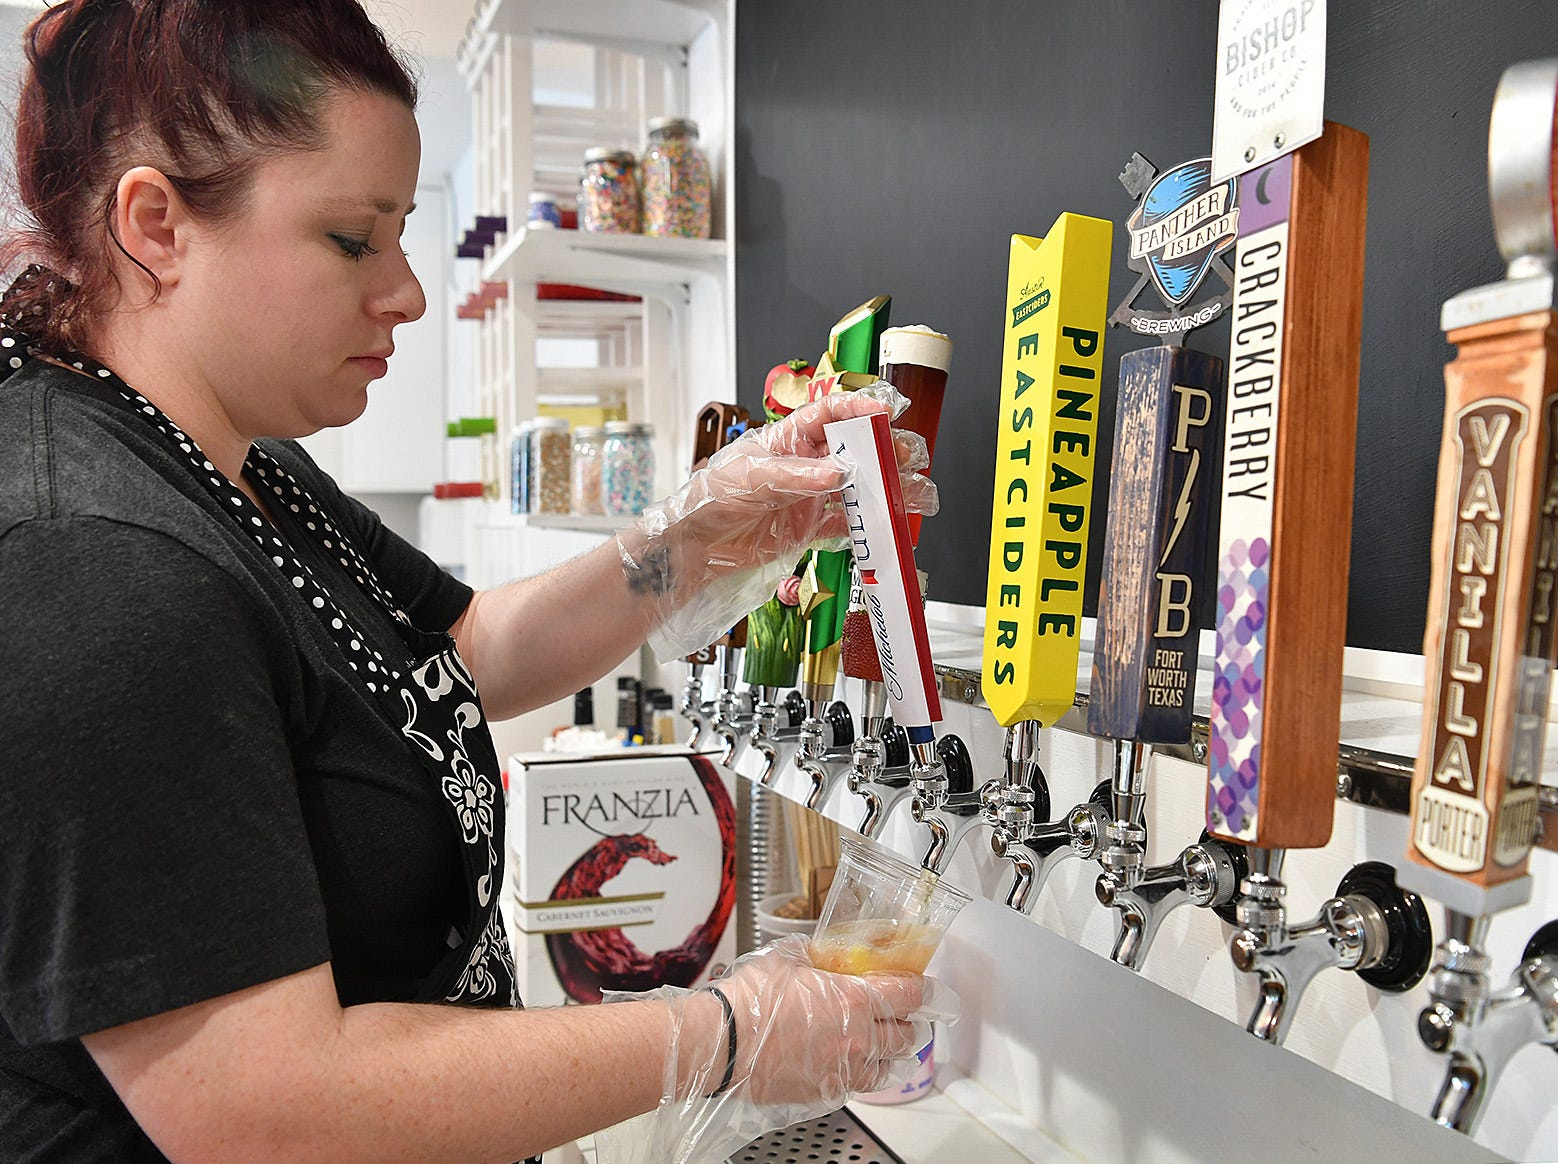 Brenna Pohlod, owner of Clink!, an adult dessert bar, begins making one of her signature alcohol-infused desserts. The new business offers fresh fruits, ice creams, sorbets, cupcakes and snow cones made with alcohol.